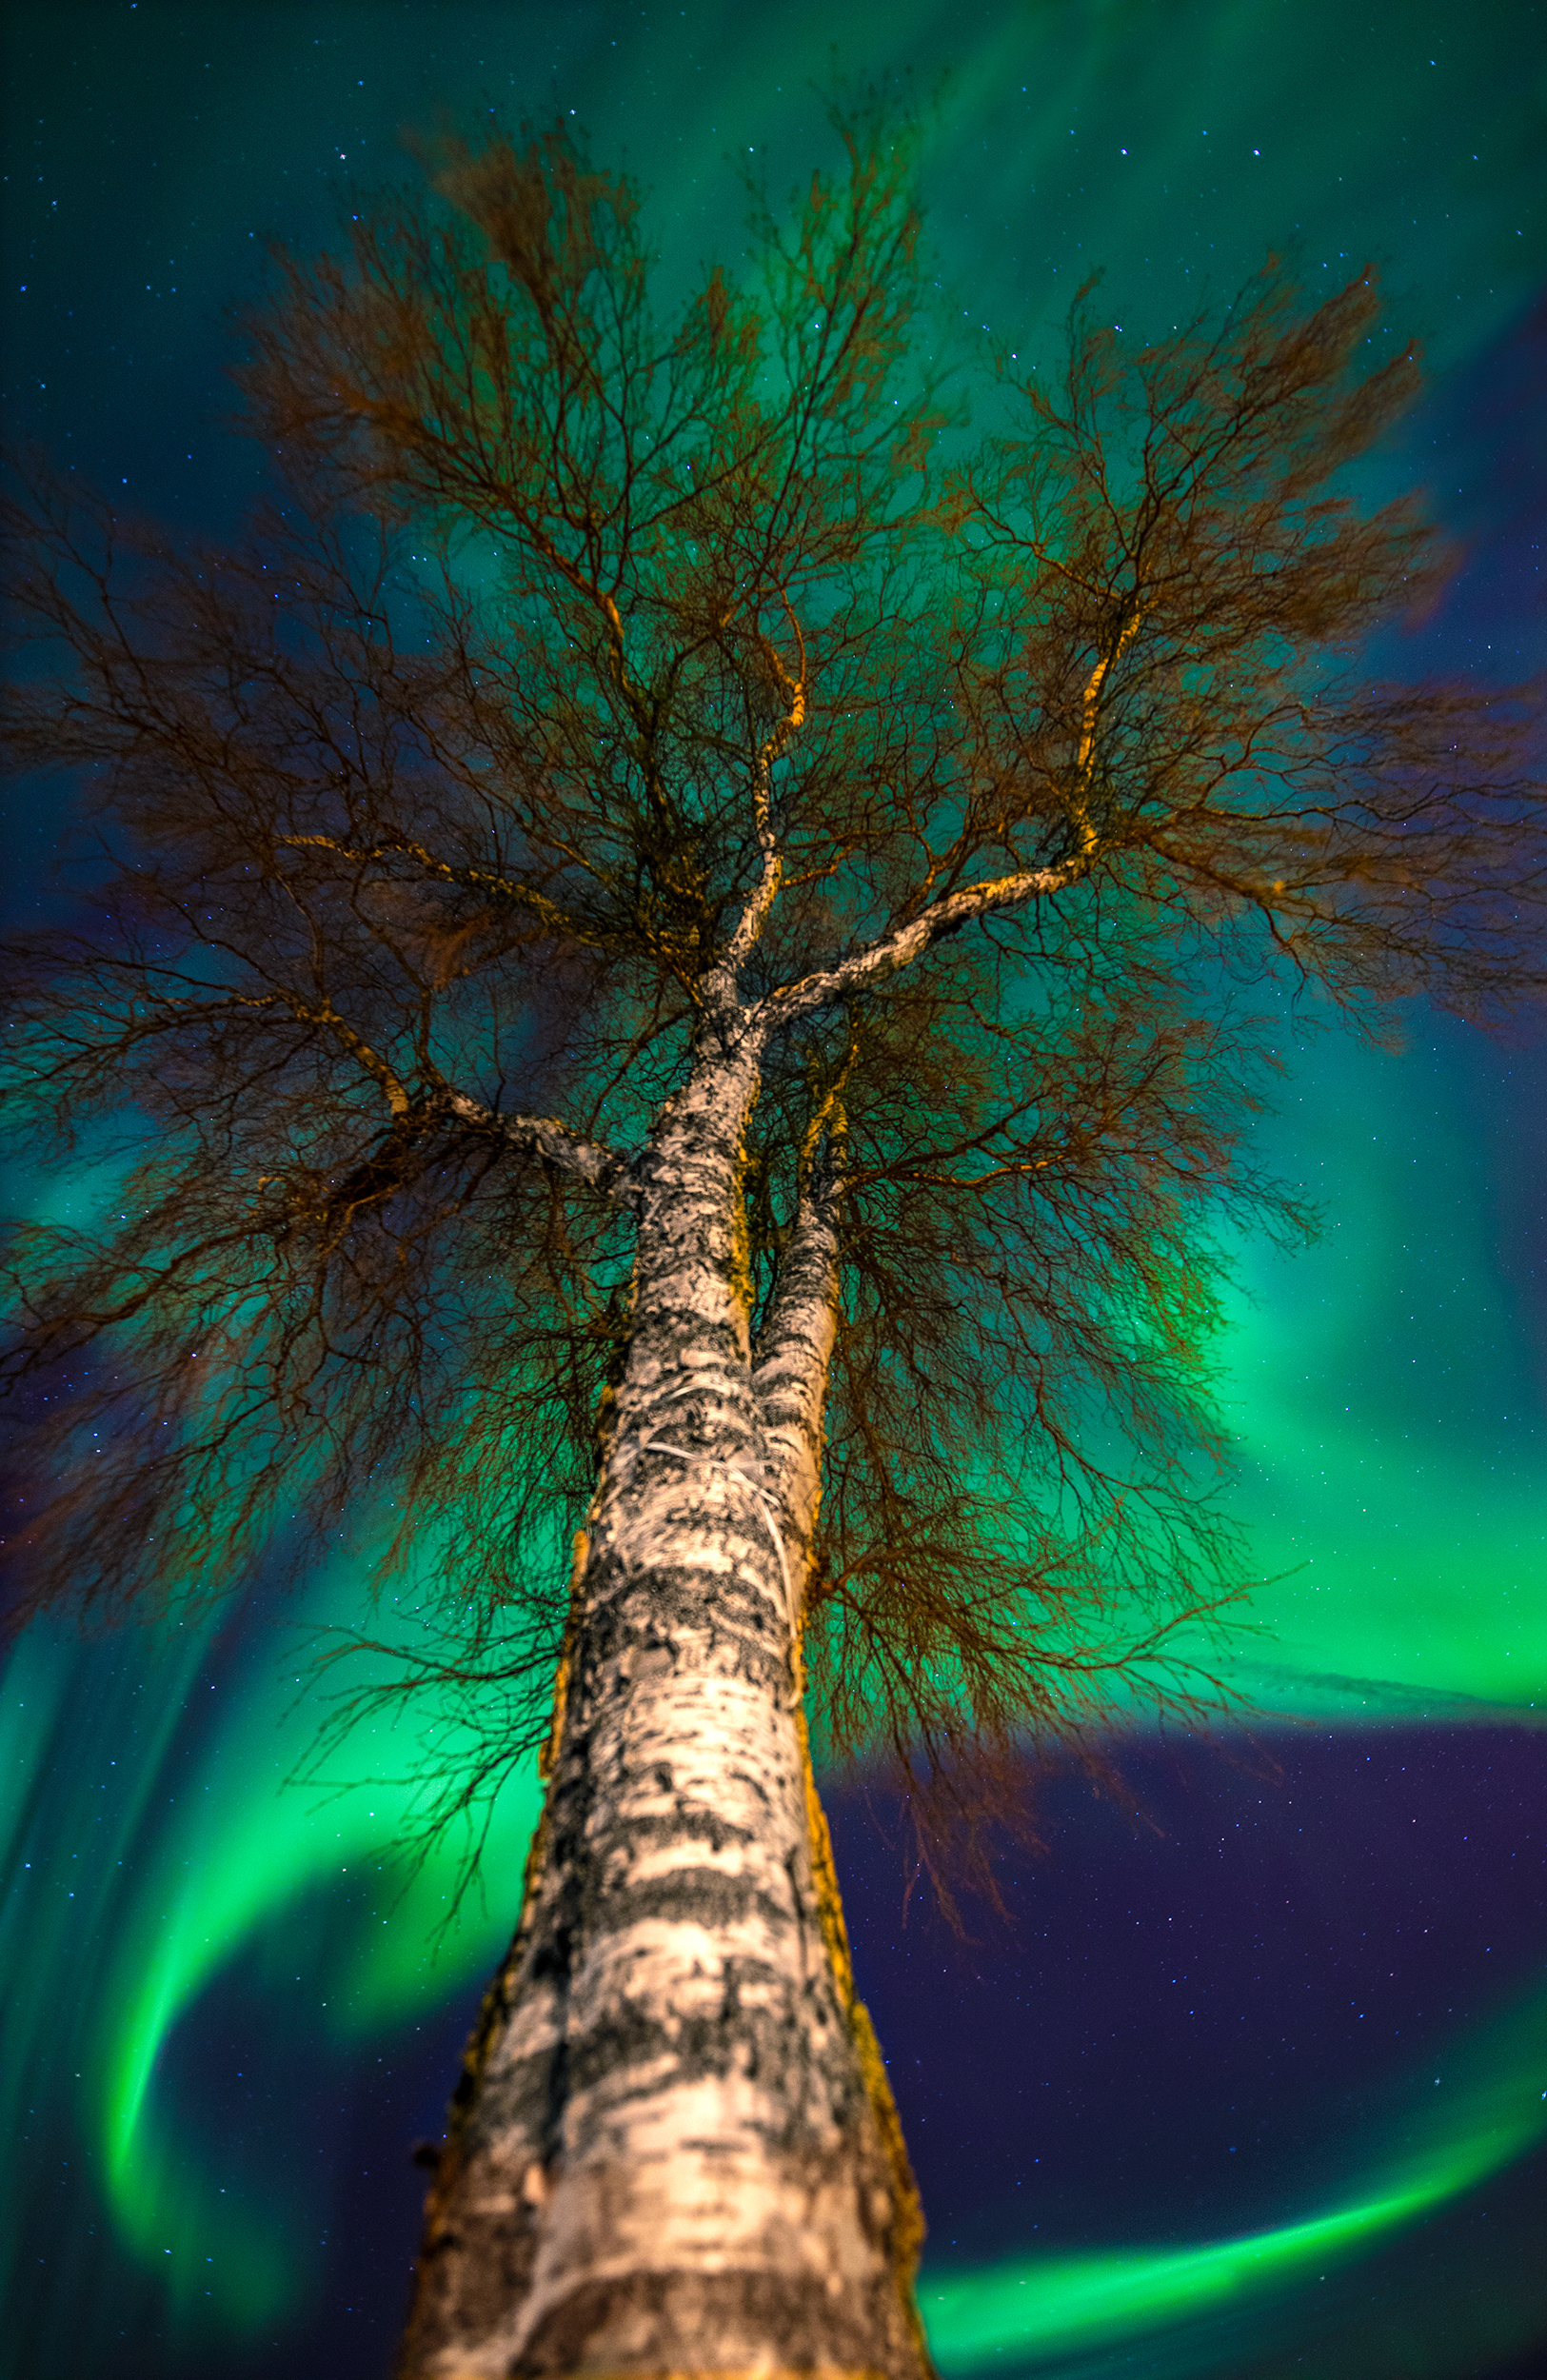 Northern light behind the tree